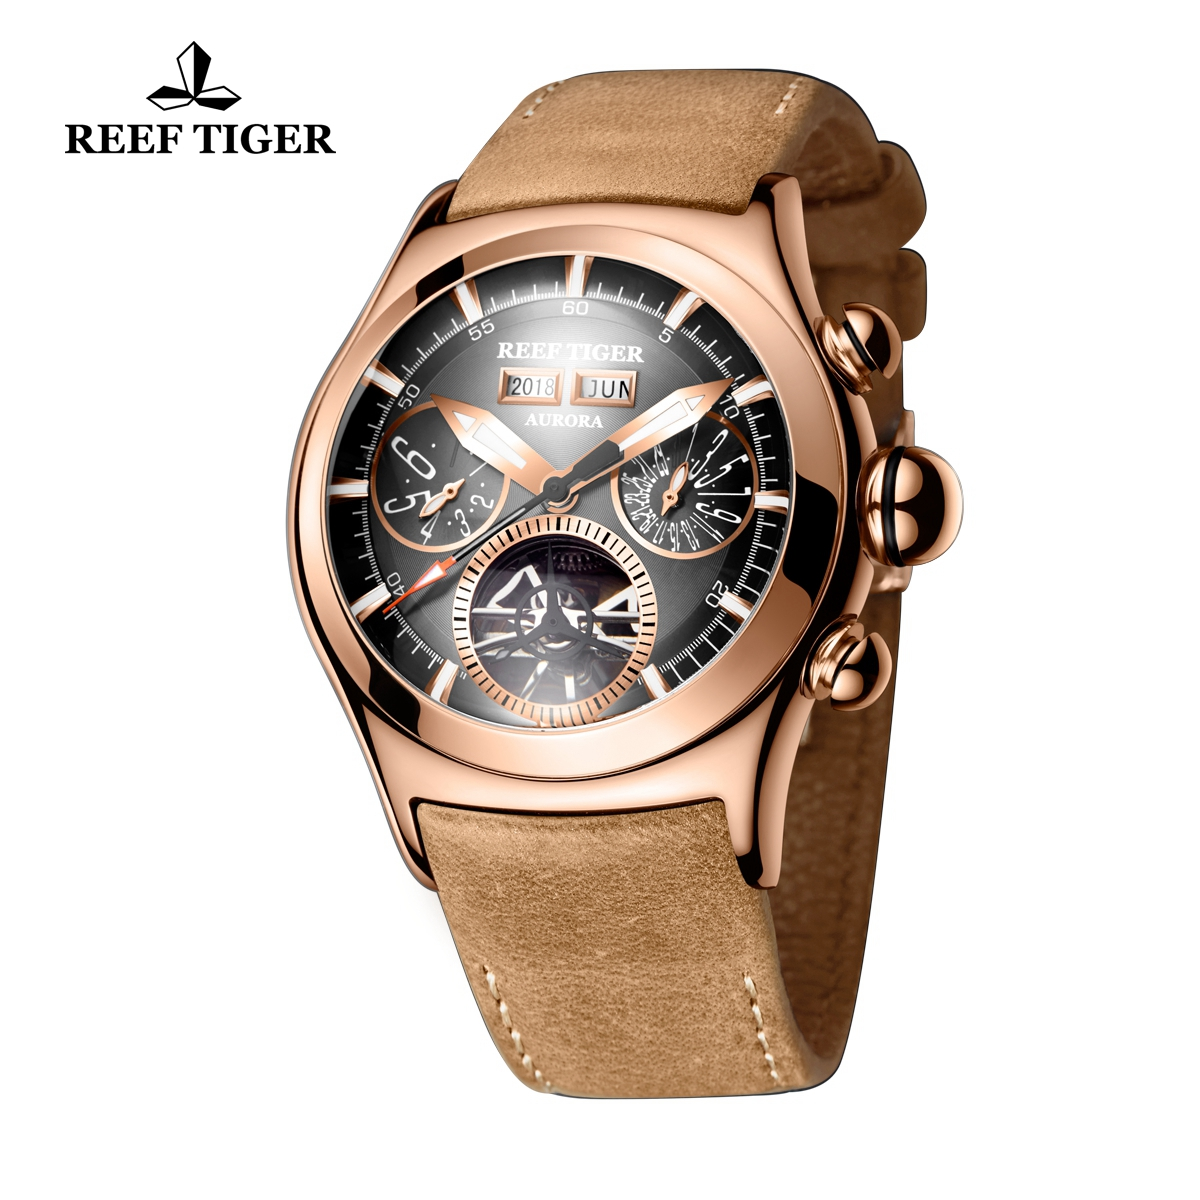 Reef Tiger Air Bubble II Sport Casual Watches Automatic Watch Rose Gold Case Leather Strap RGA7503-PBS